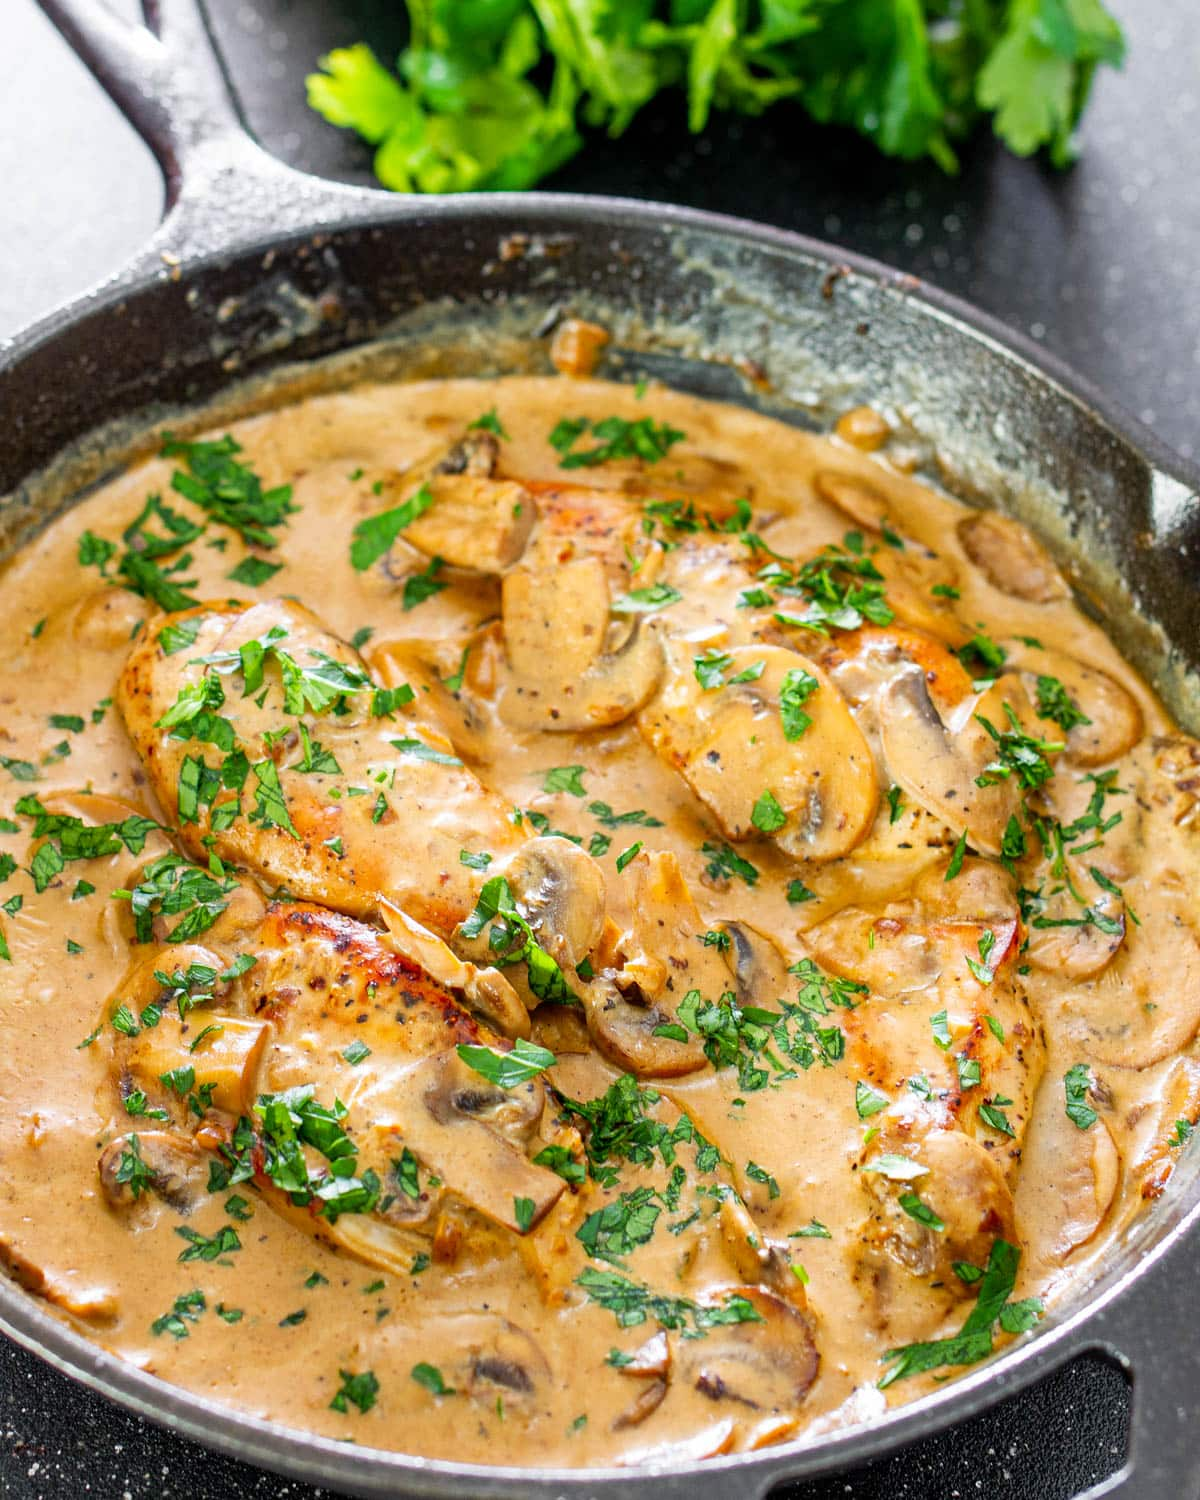 chicken in creamy white wine mushroom sauce in a black skillet garnished with parsley